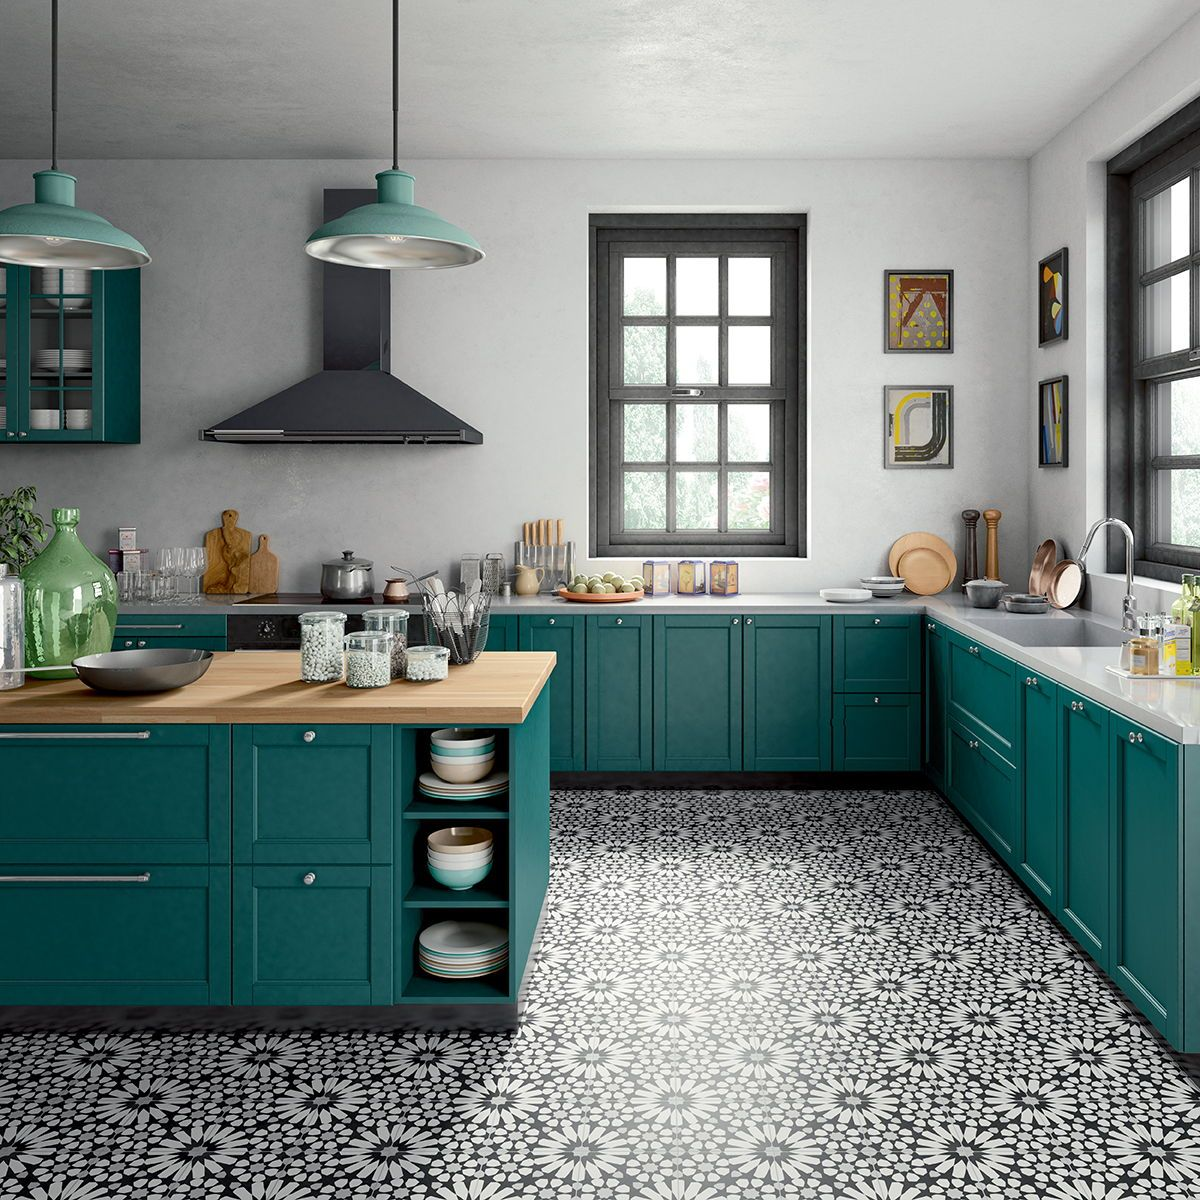 Cancos Tile Stone Tiletuesday Featuring Our Etna Big Aster From